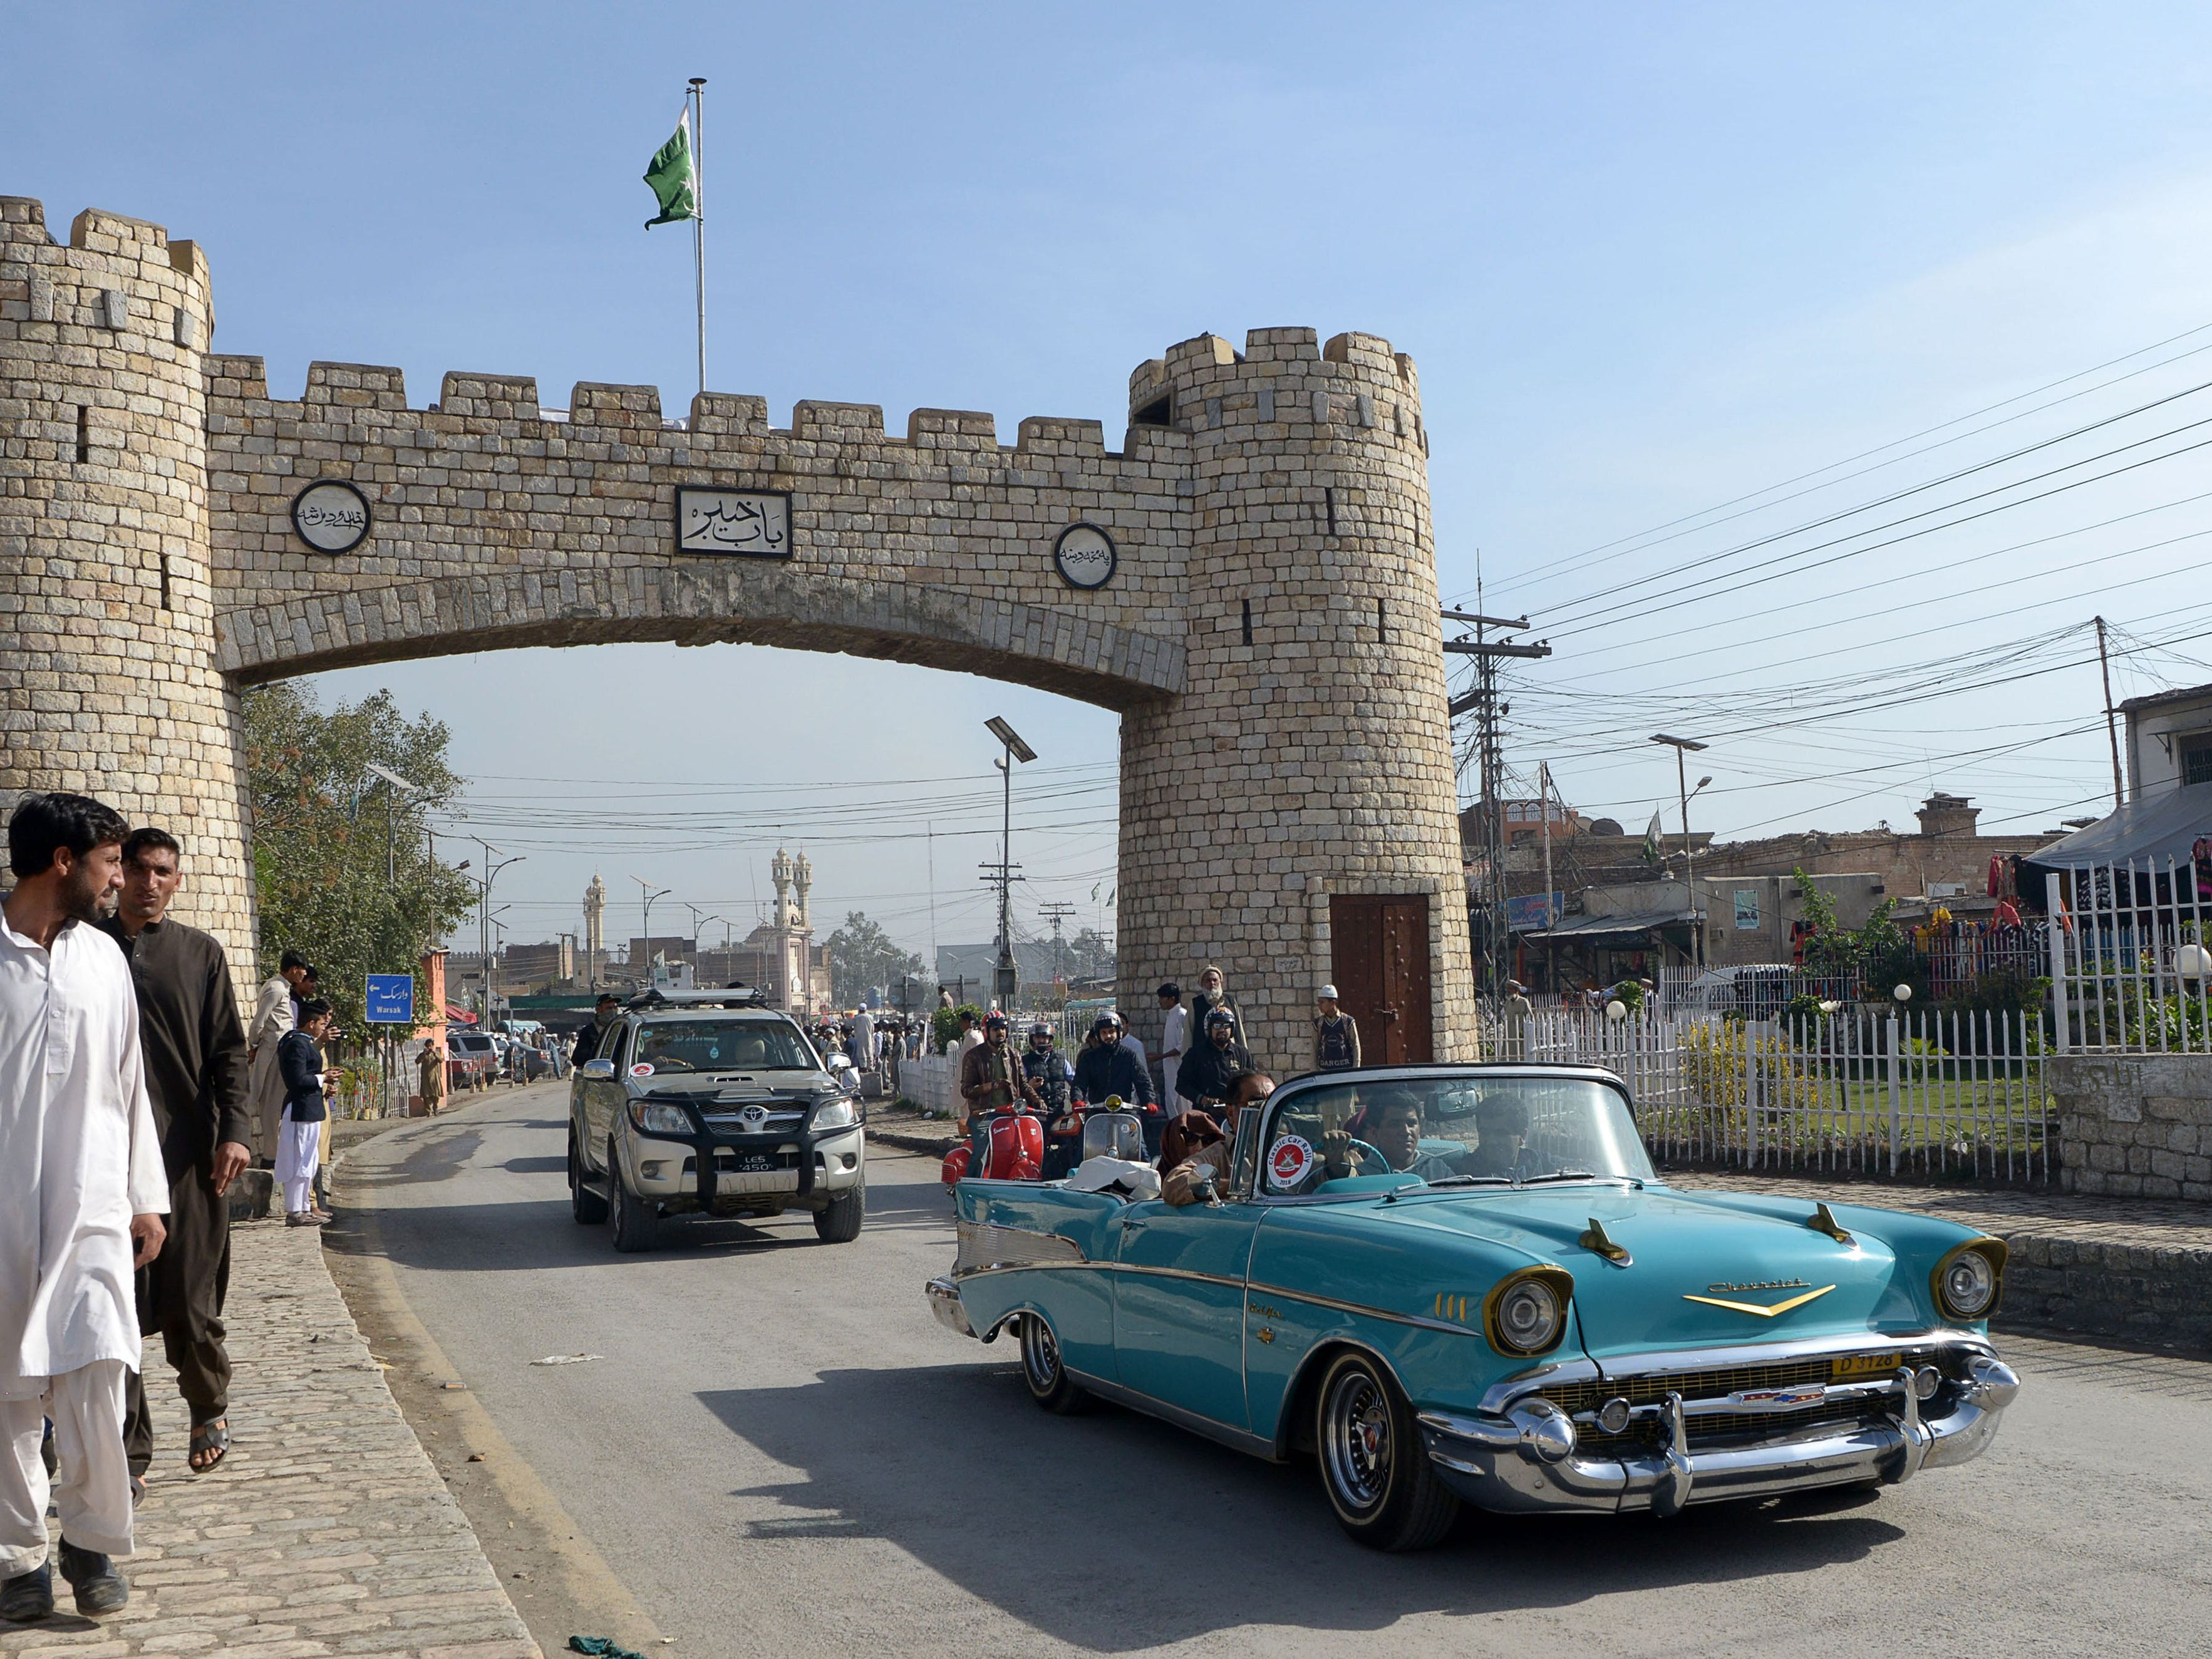 Pakistani people drive vintage cars at the '9th Annual Classic Car Rally 2018' in Landi Kotal, a town in the Khyber Pakhtunkhwa province on November 24, 2018. (Photo by ABDUL MAJEED / AFP)        (Photo credit should read ABDUL MAJEED/AFP/Getty Images)